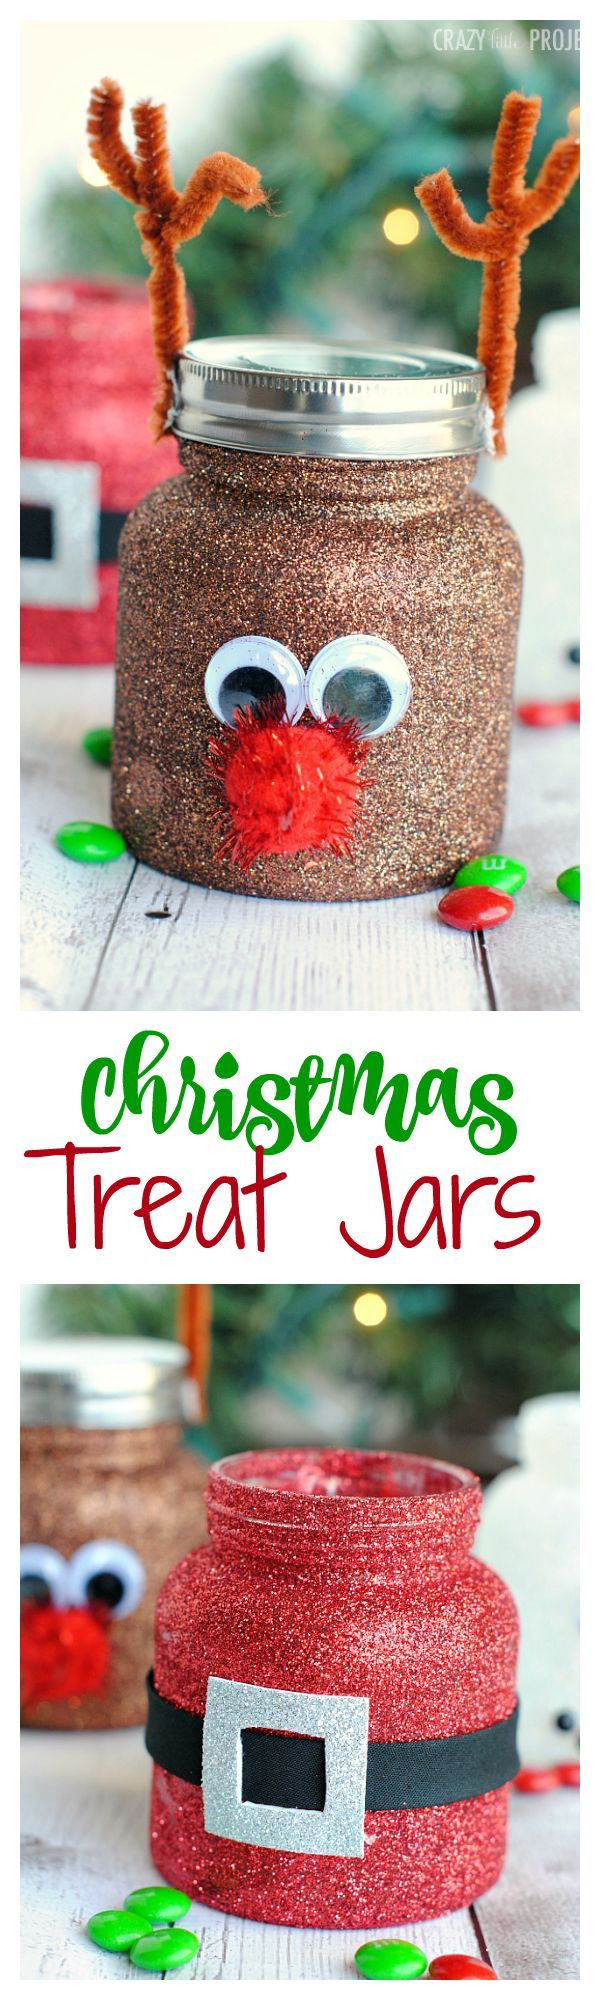 13+ Cute christmas crafts for kids ideas